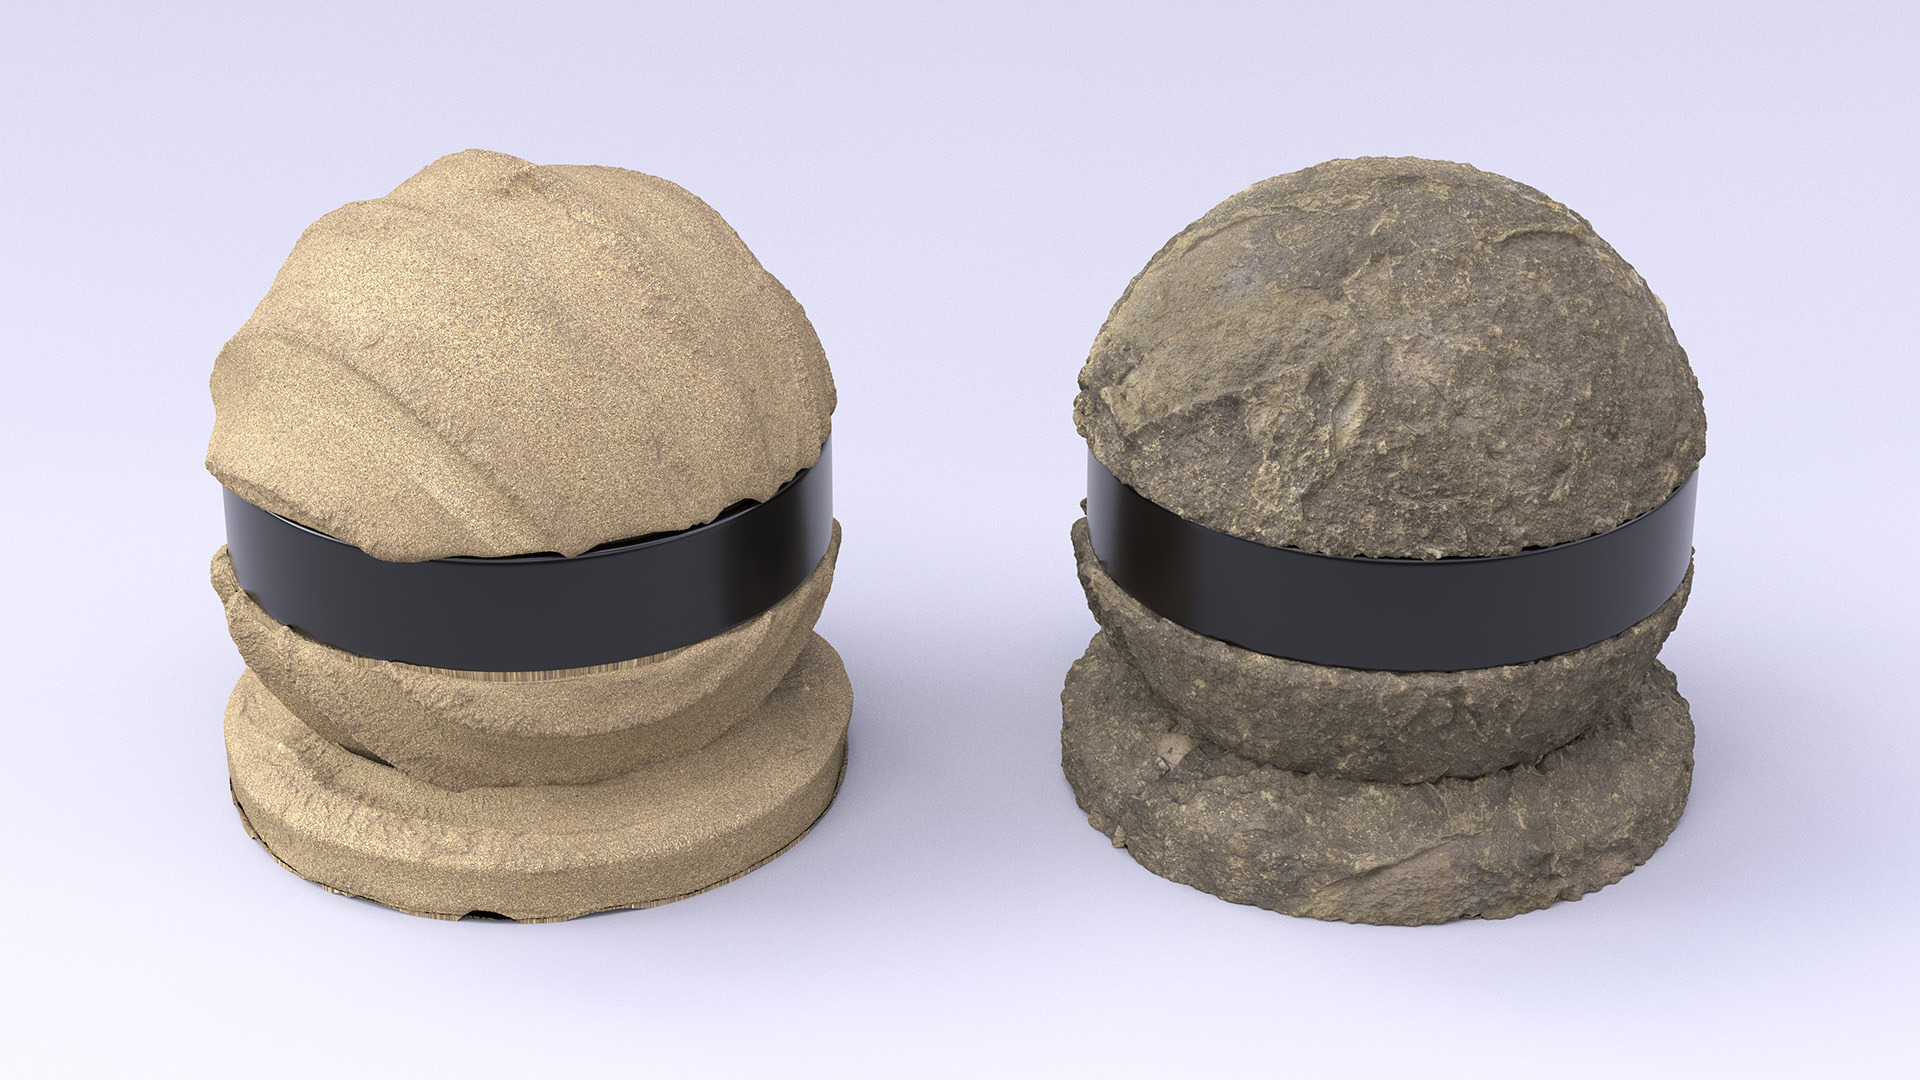 Figure 8: A compacted sand sphere and a stone sphere. Unfortunately, there is some noticeable texture stretching on the compacted sand sphere where crack removal occured.